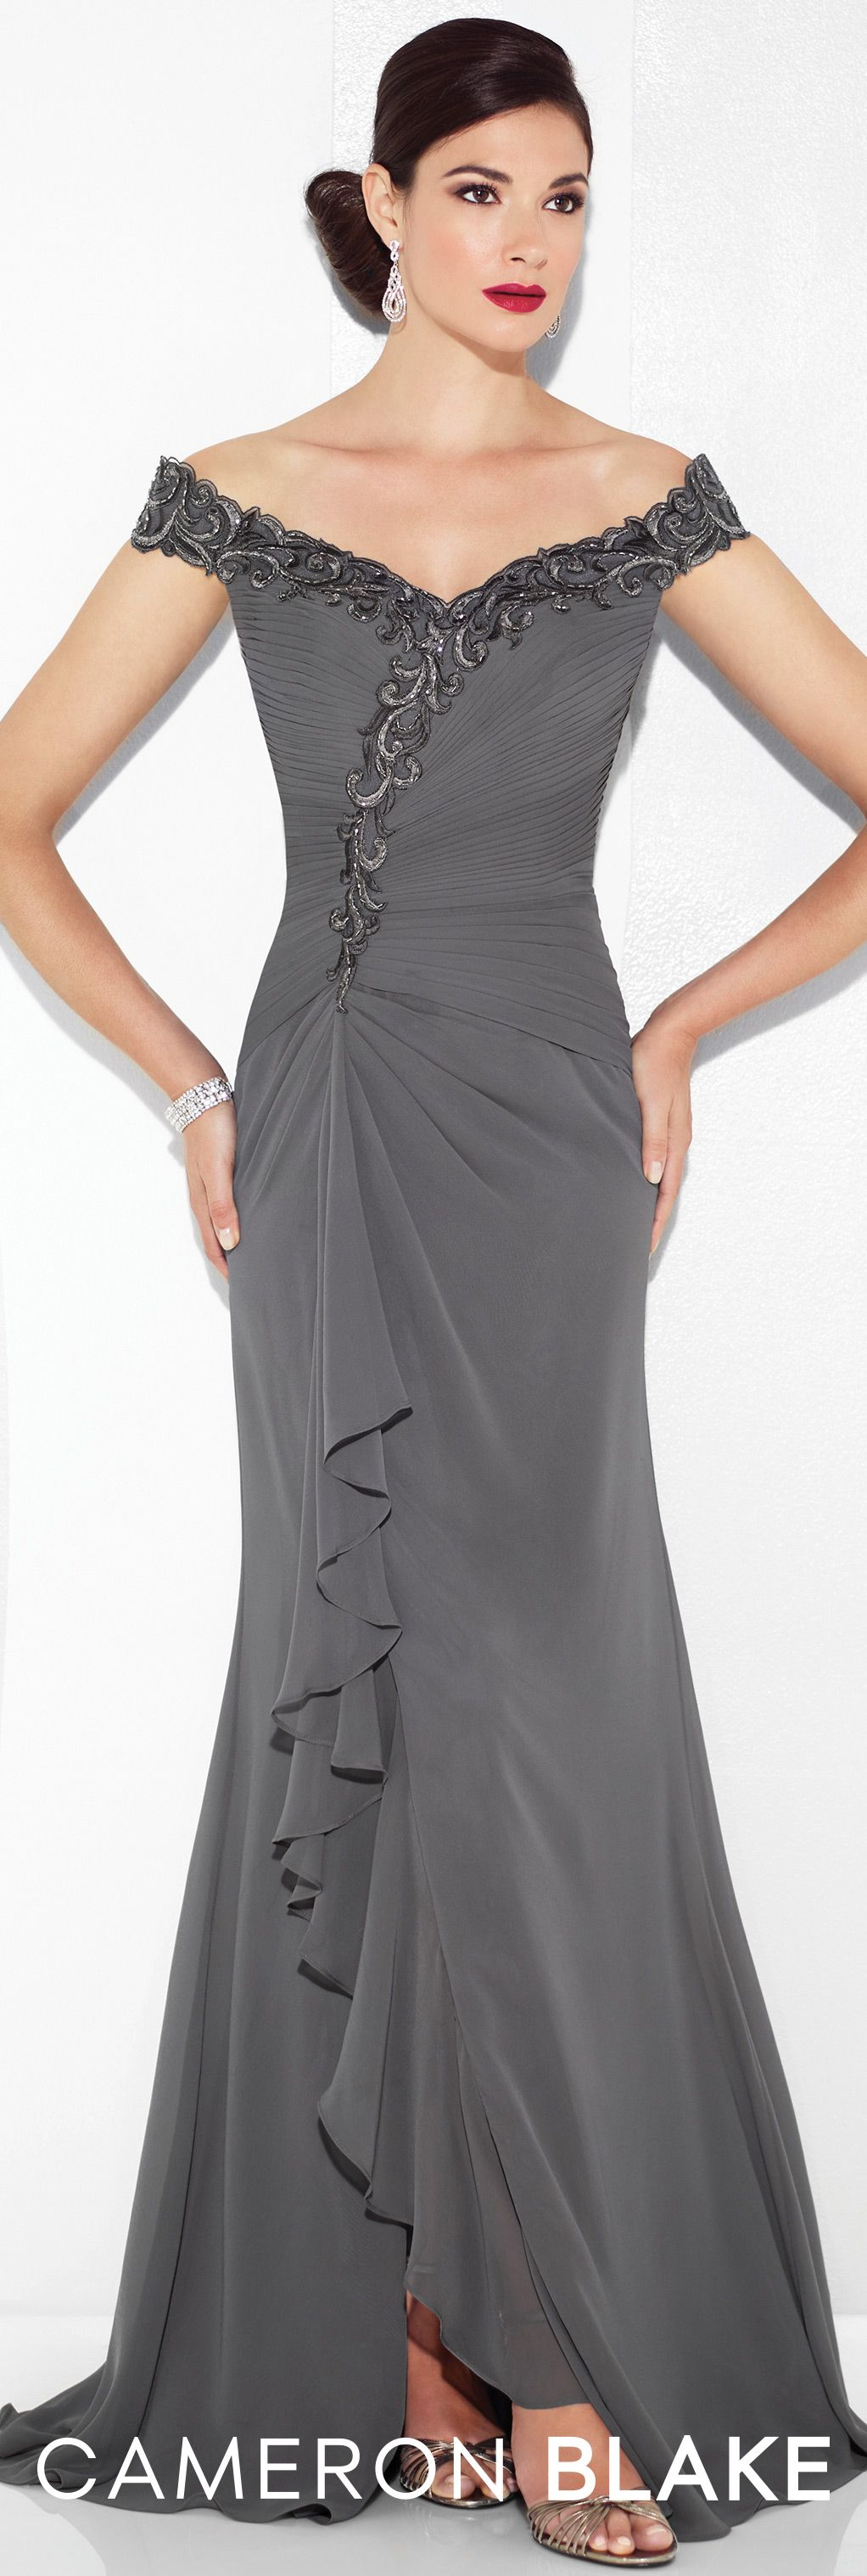 Cameron Blake - Evening Dresses - 117602 | Pewter, Formal and Gowns